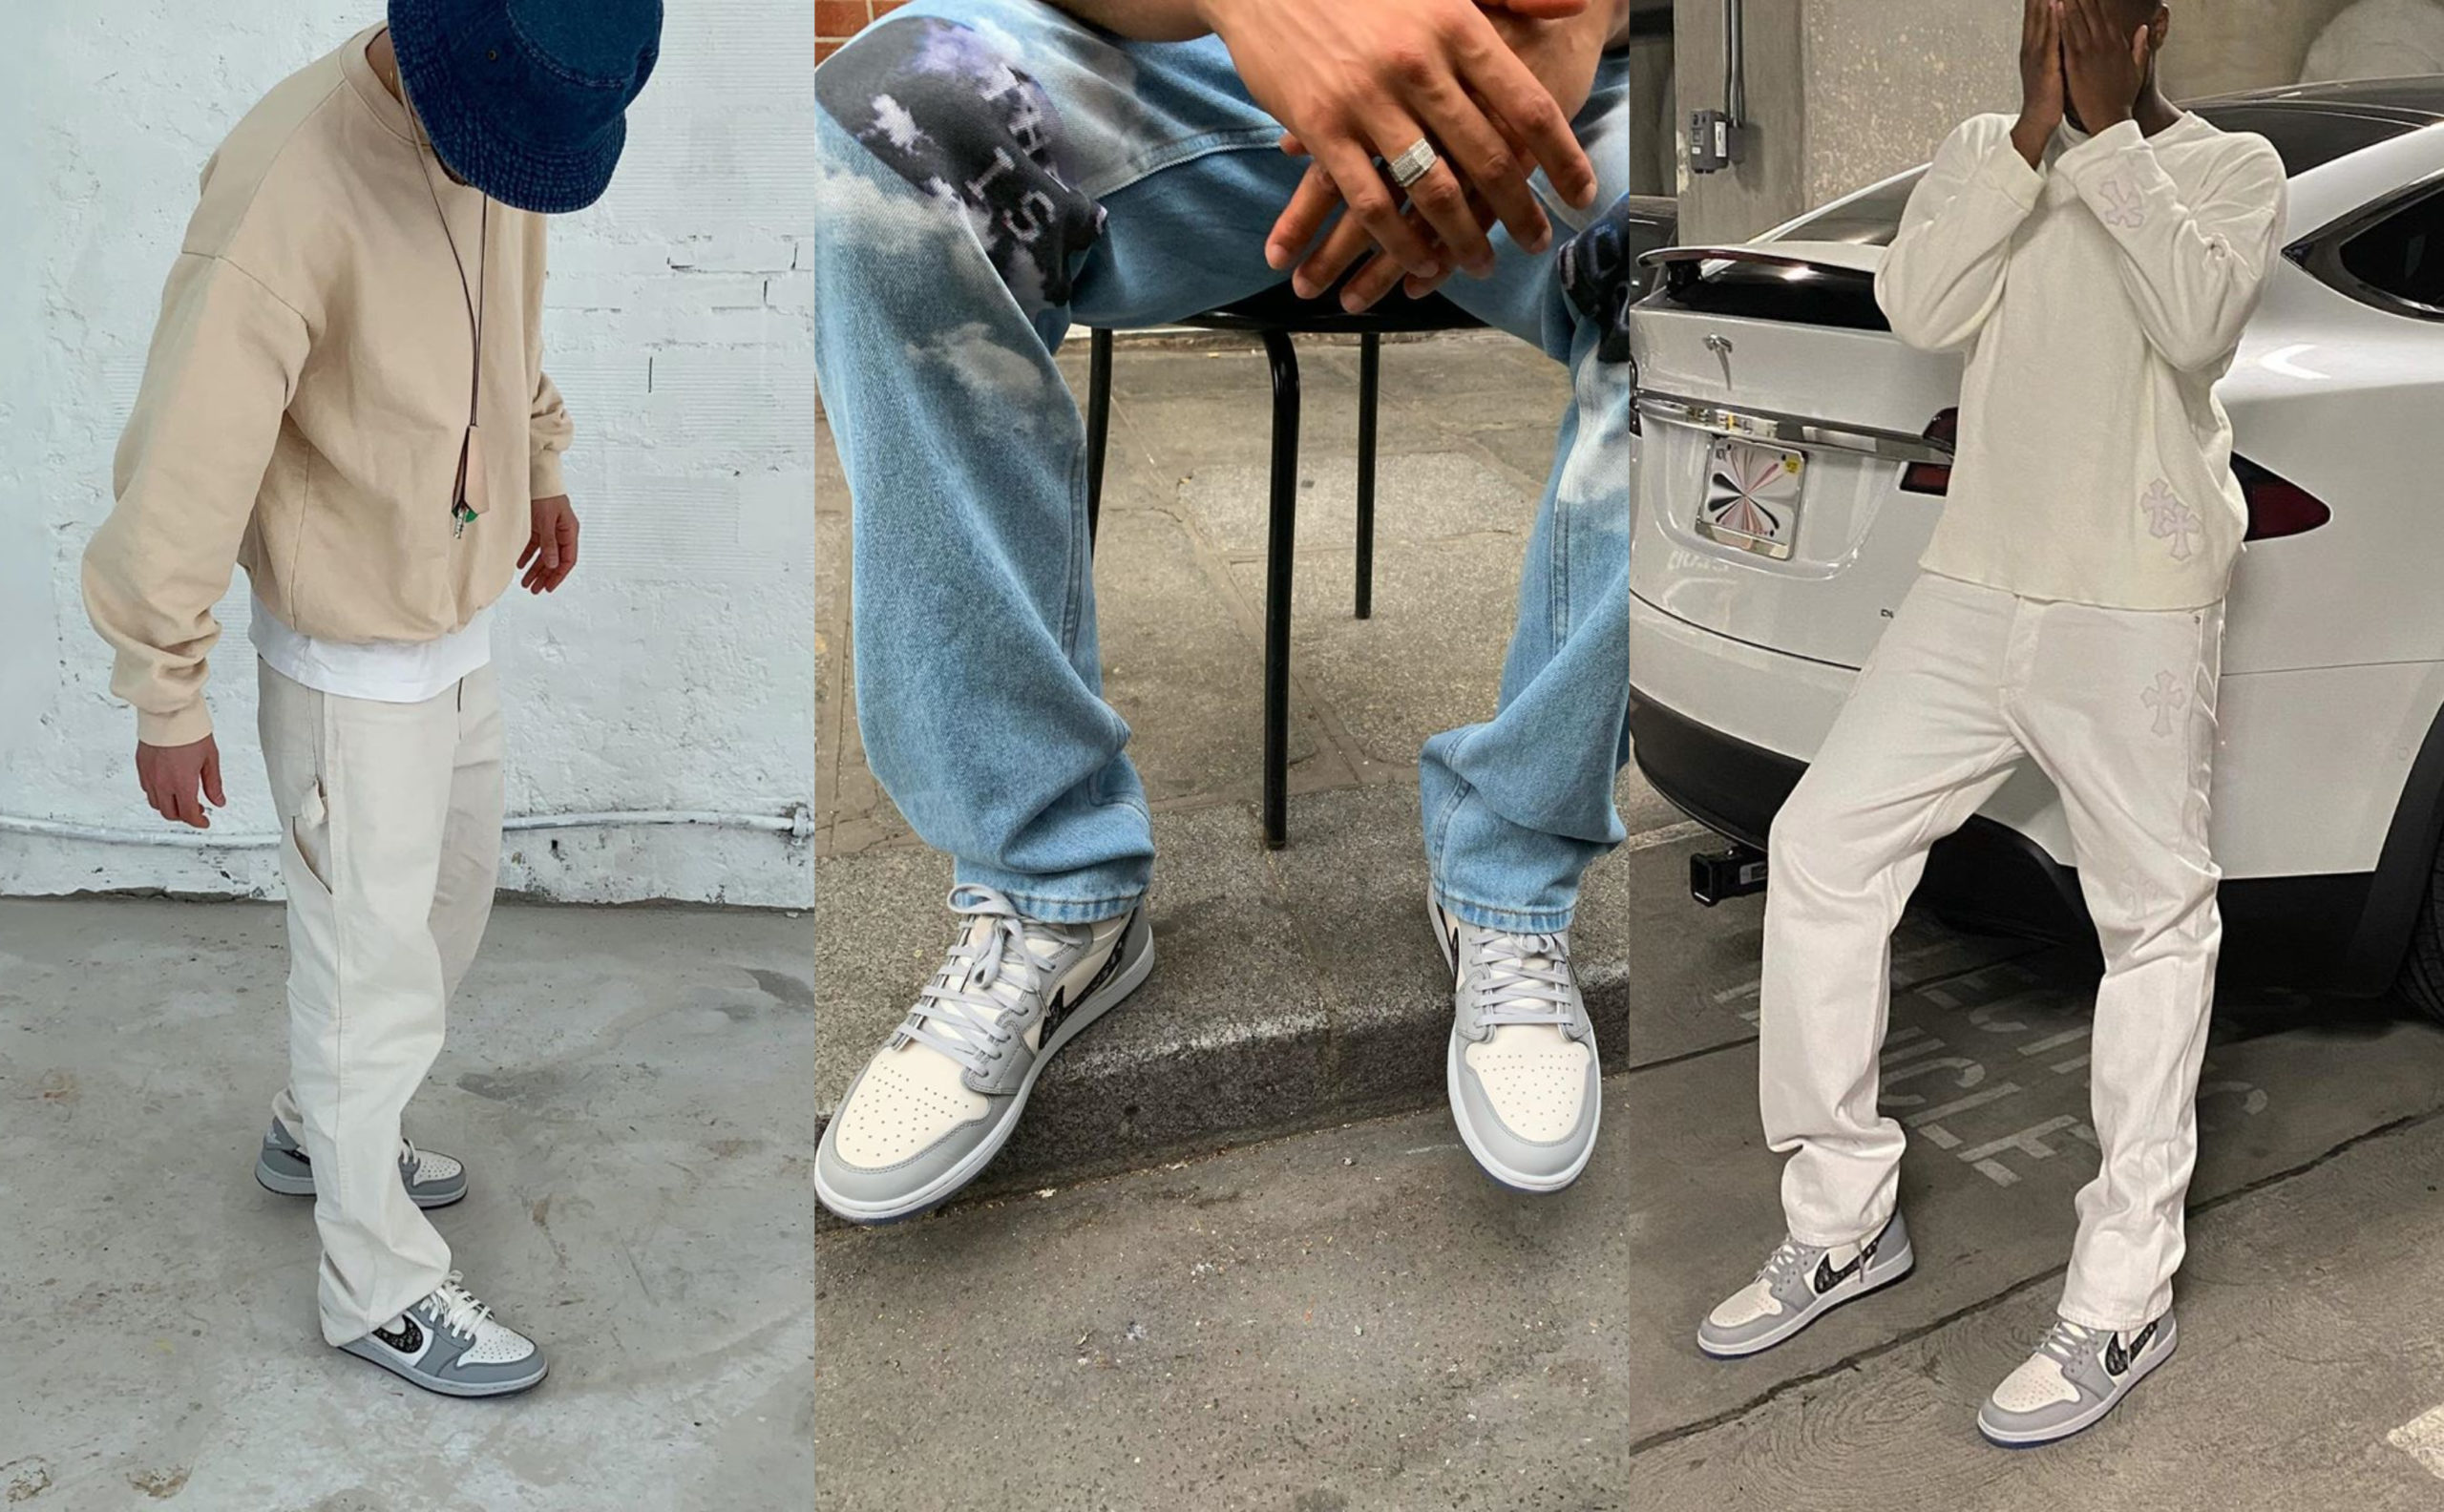 SPOTTED: The Early Adopters of the Dior X Nike AJ1